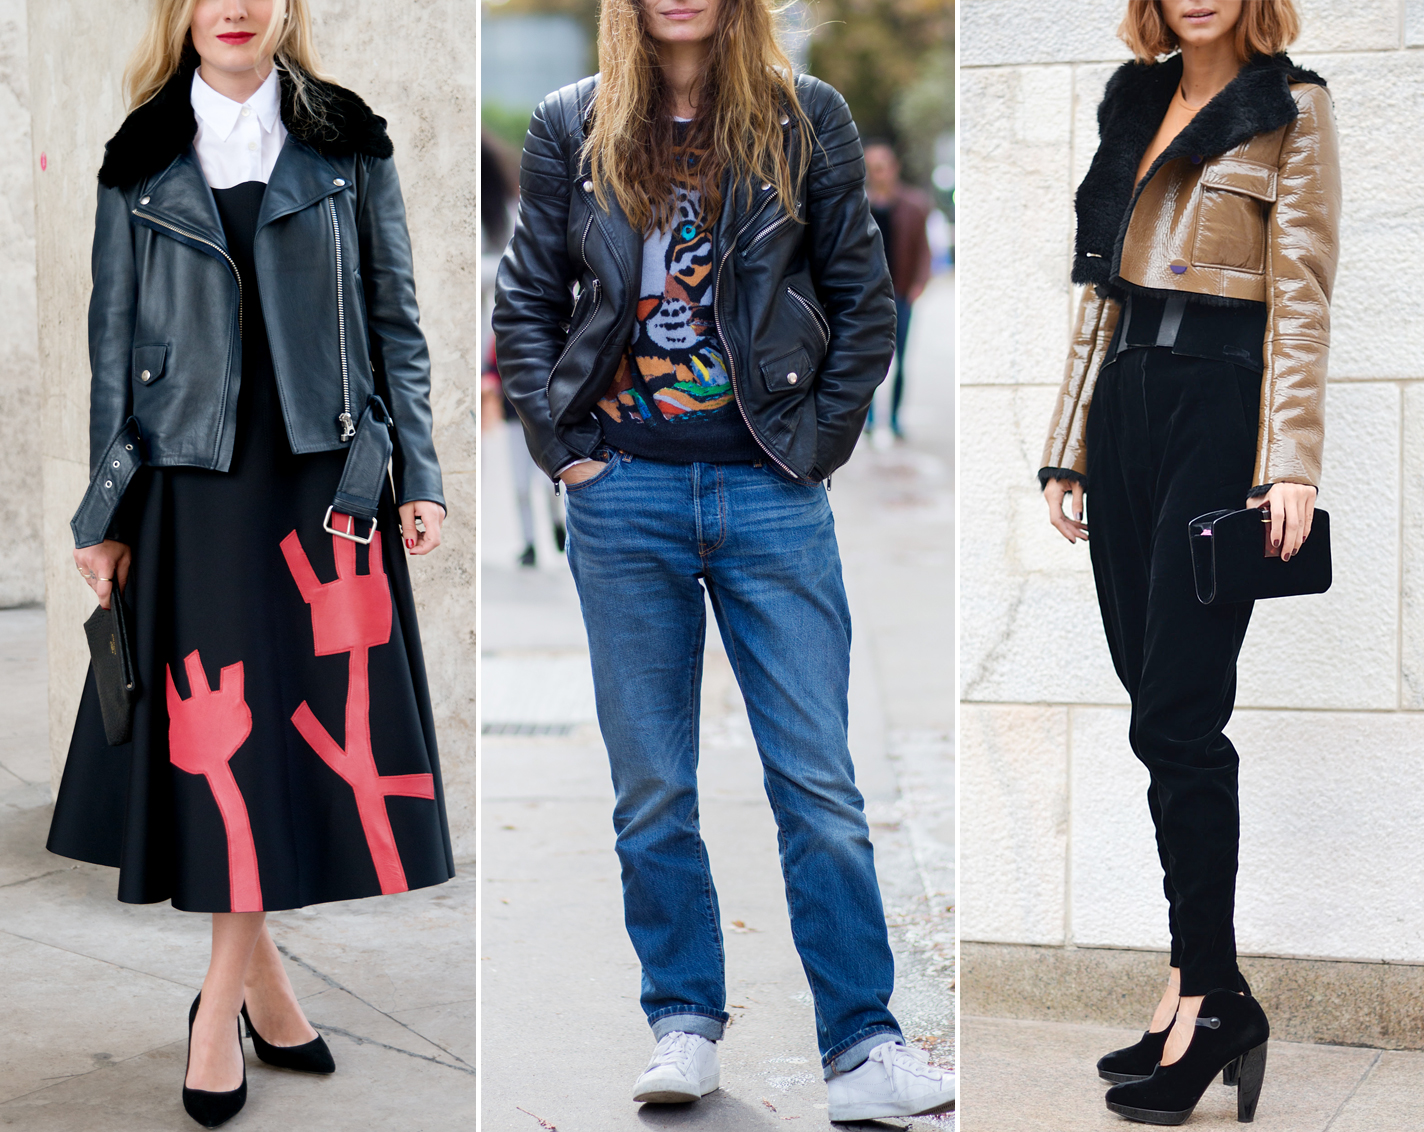 8 Intriguing Ways to Wear a Leather Jacket